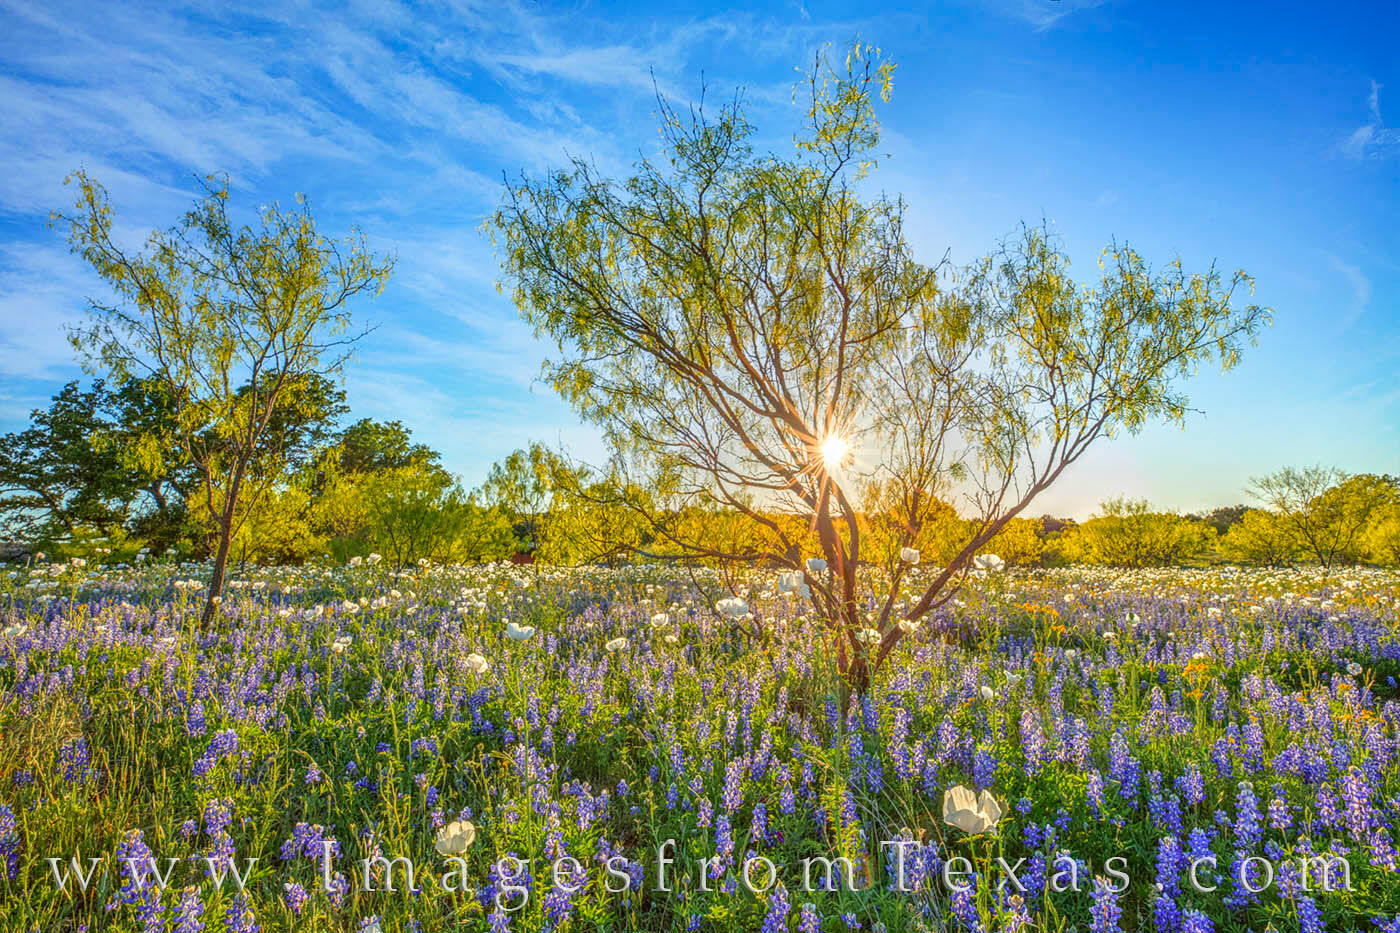 Bluebonnets and White Prickly Poppies share a field as the sun sets in the west. The sunburst lights up the thin leaves of the...